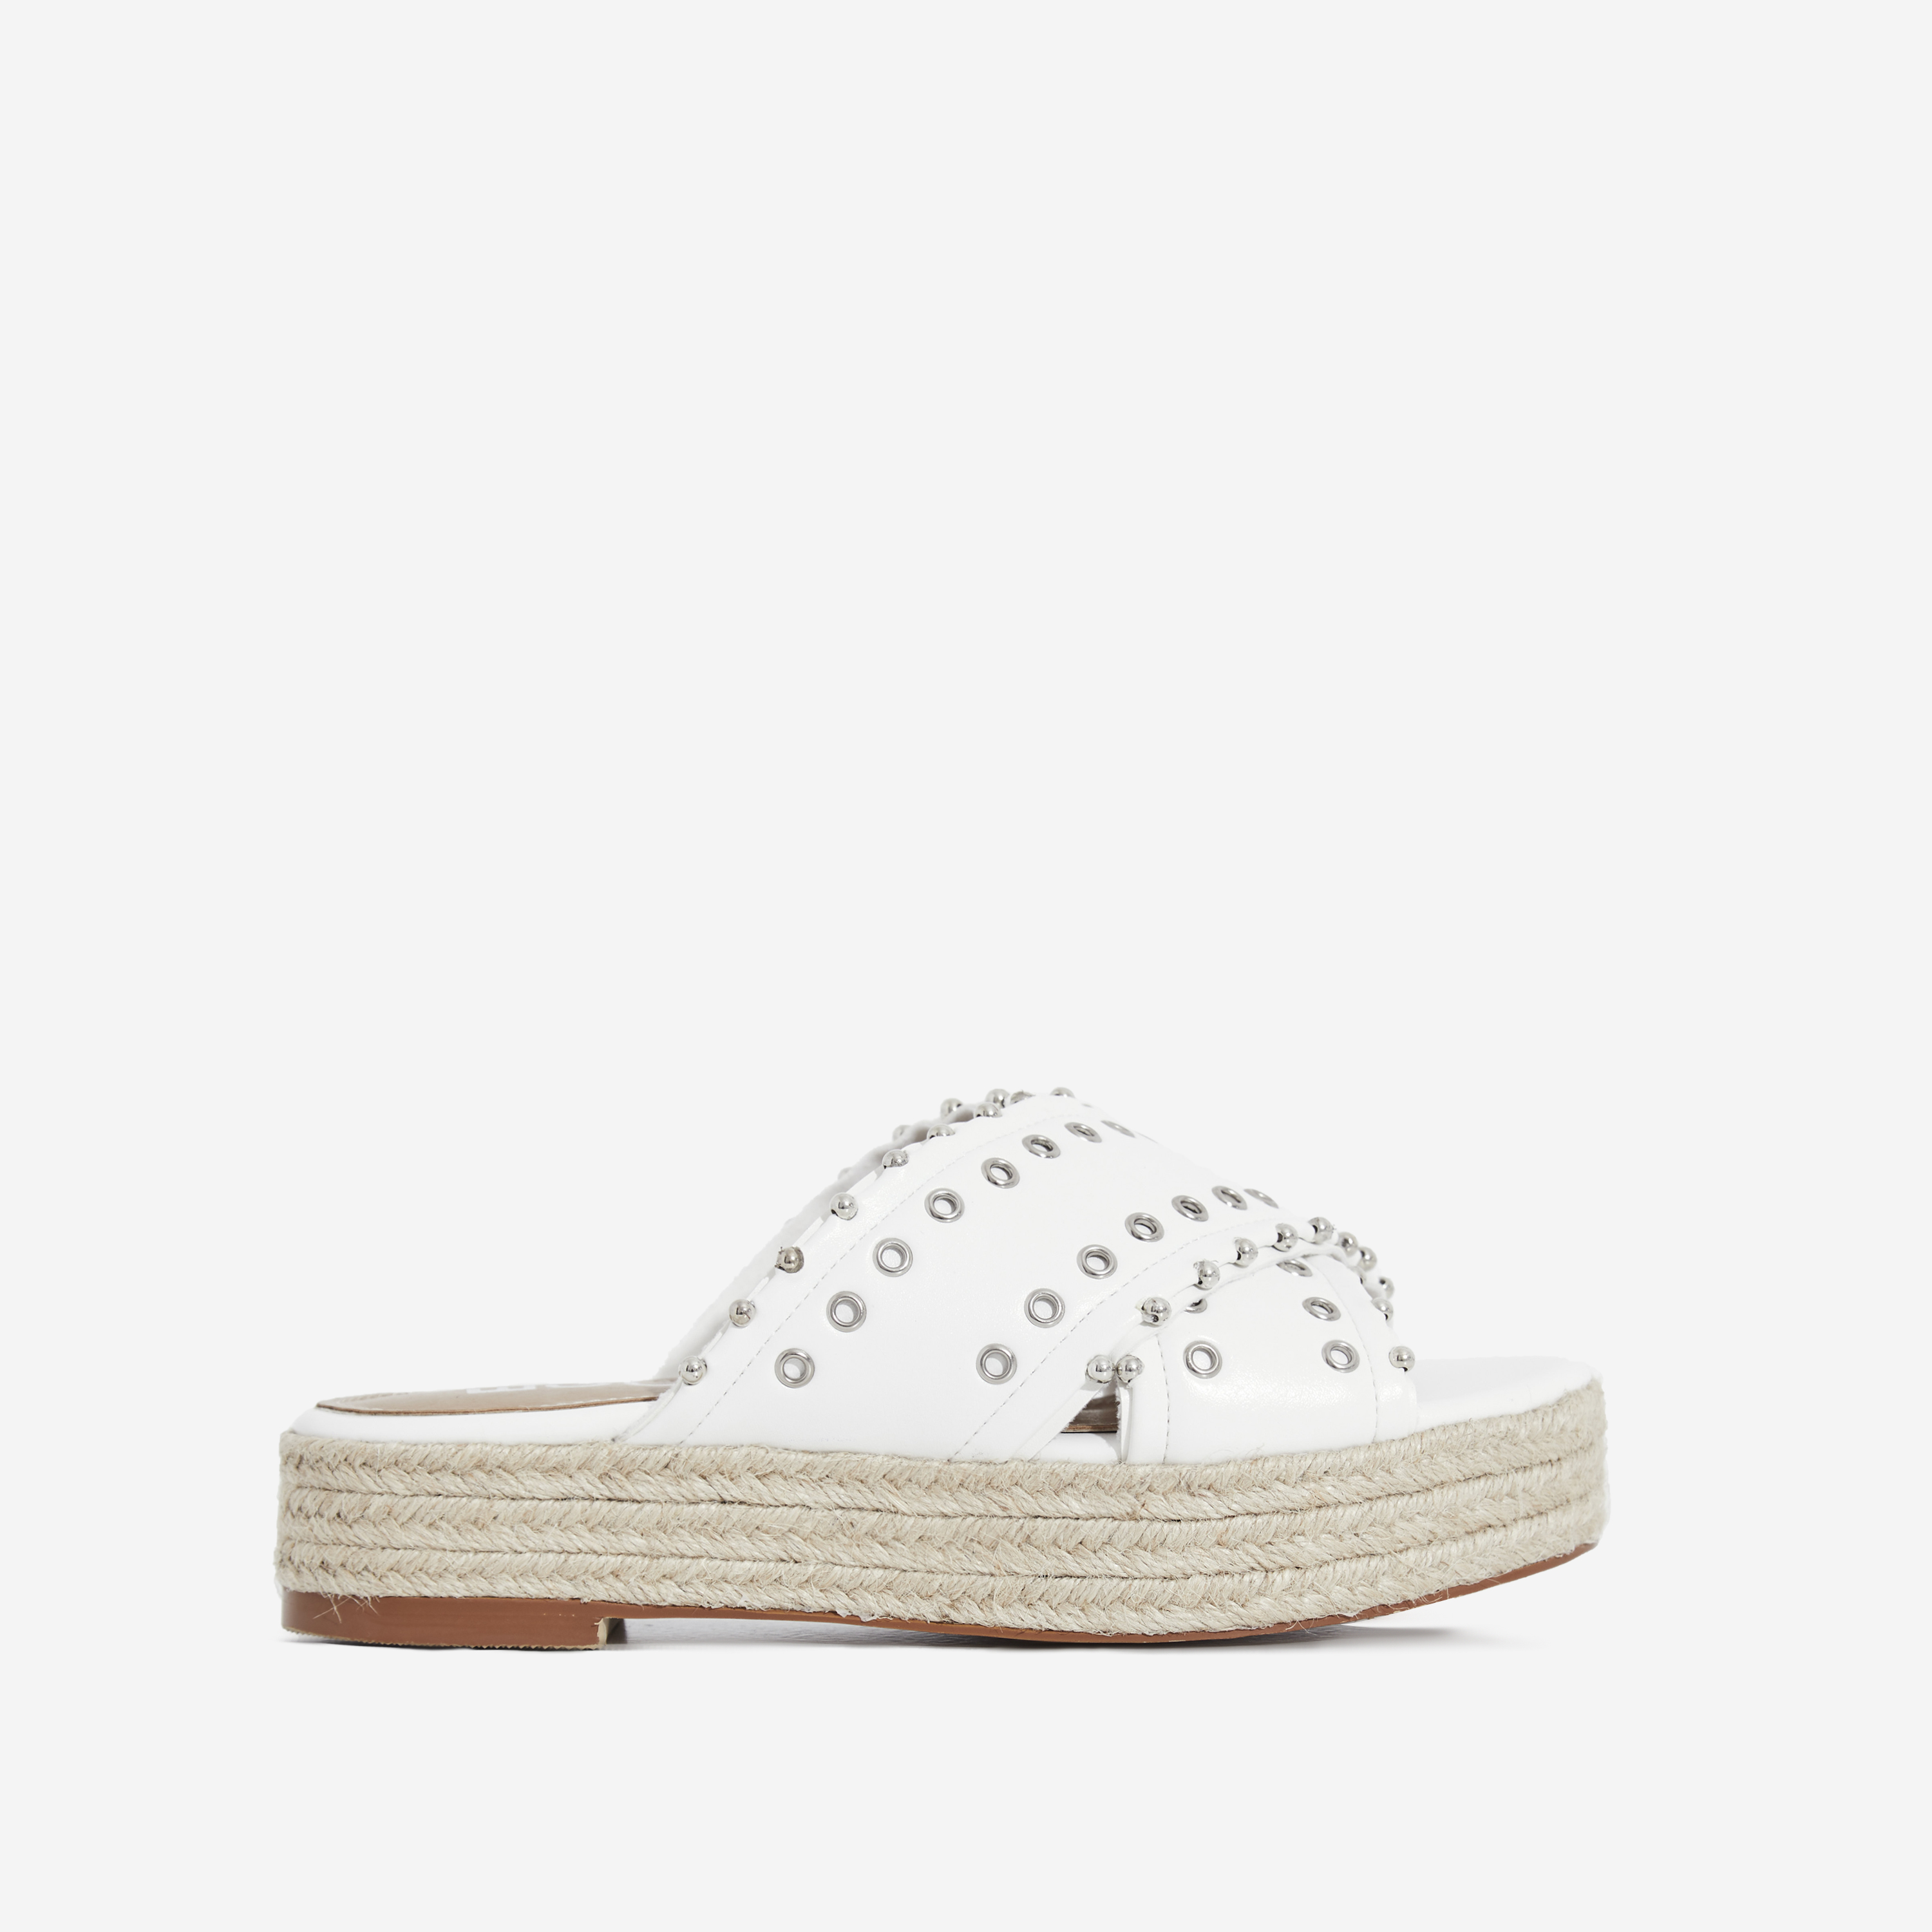 Salina Studded Crossover Strap Espadrille Sandal In White Faux Leather